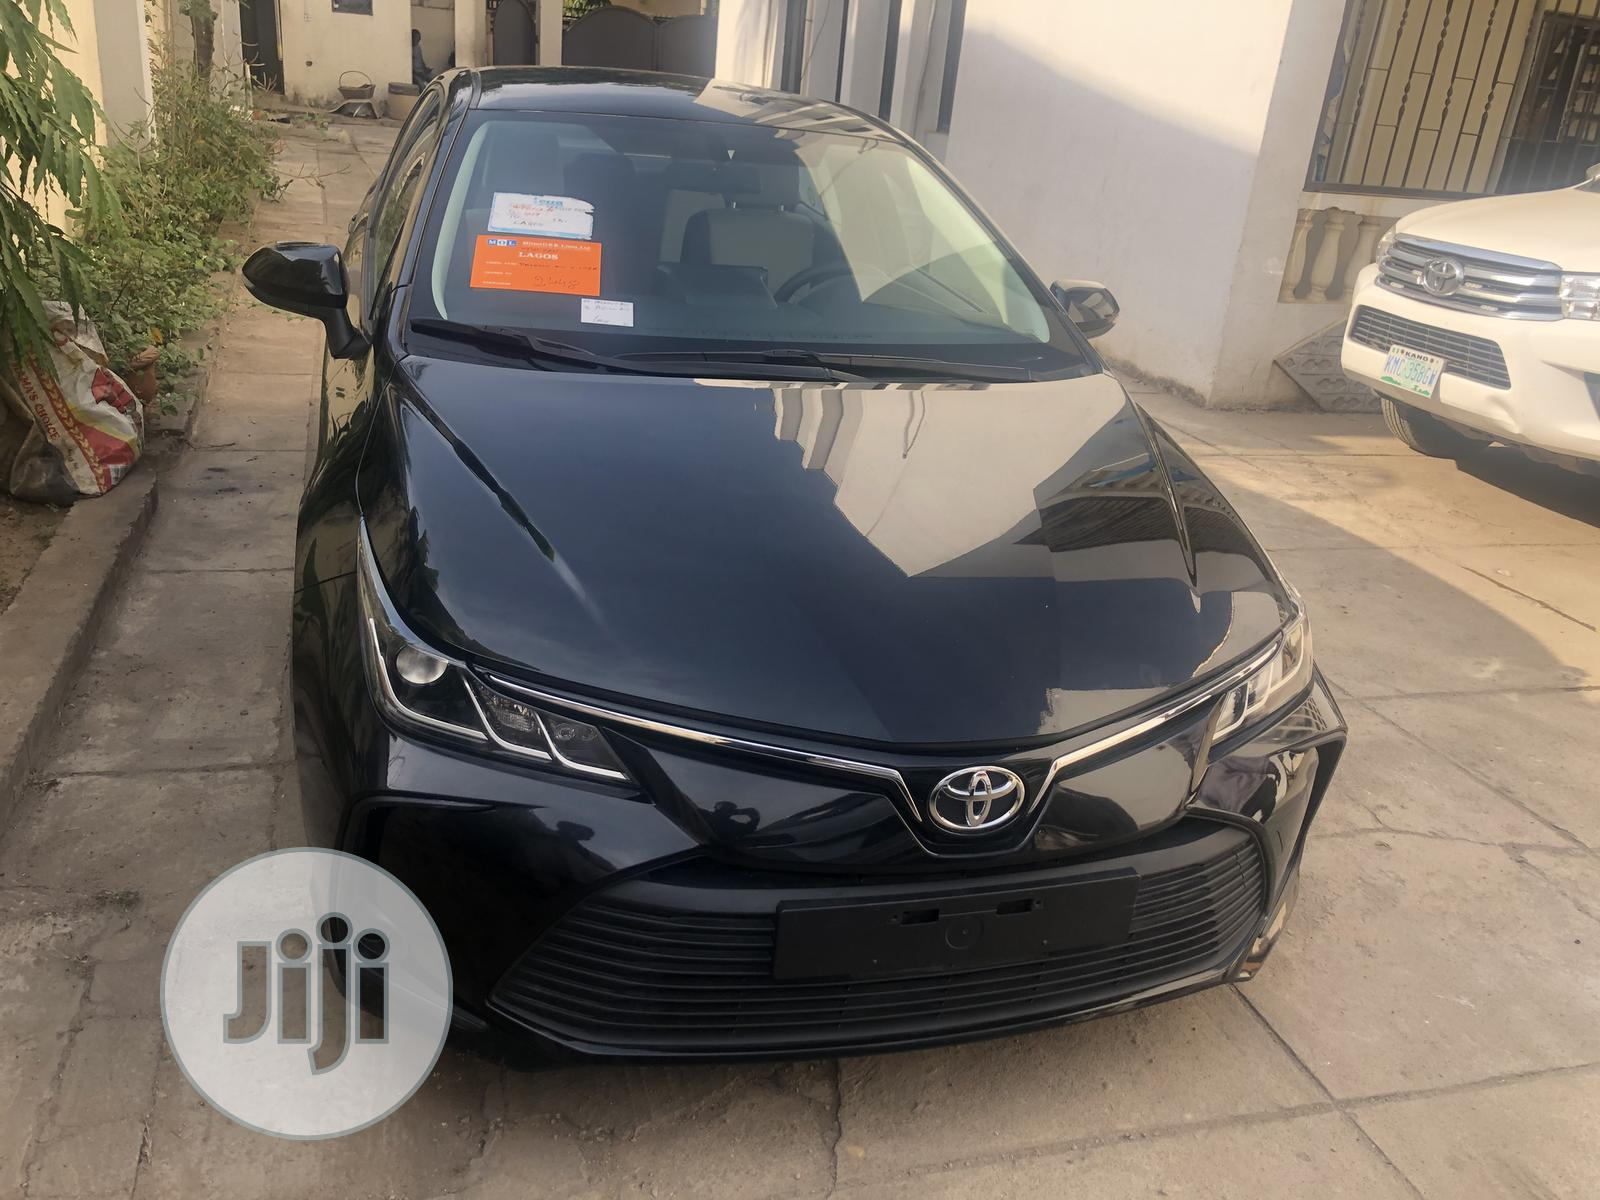 New Toyota Corolla 2020 XLE Black | Cars for sale in Wuse 2, Abuja (FCT) State, Nigeria